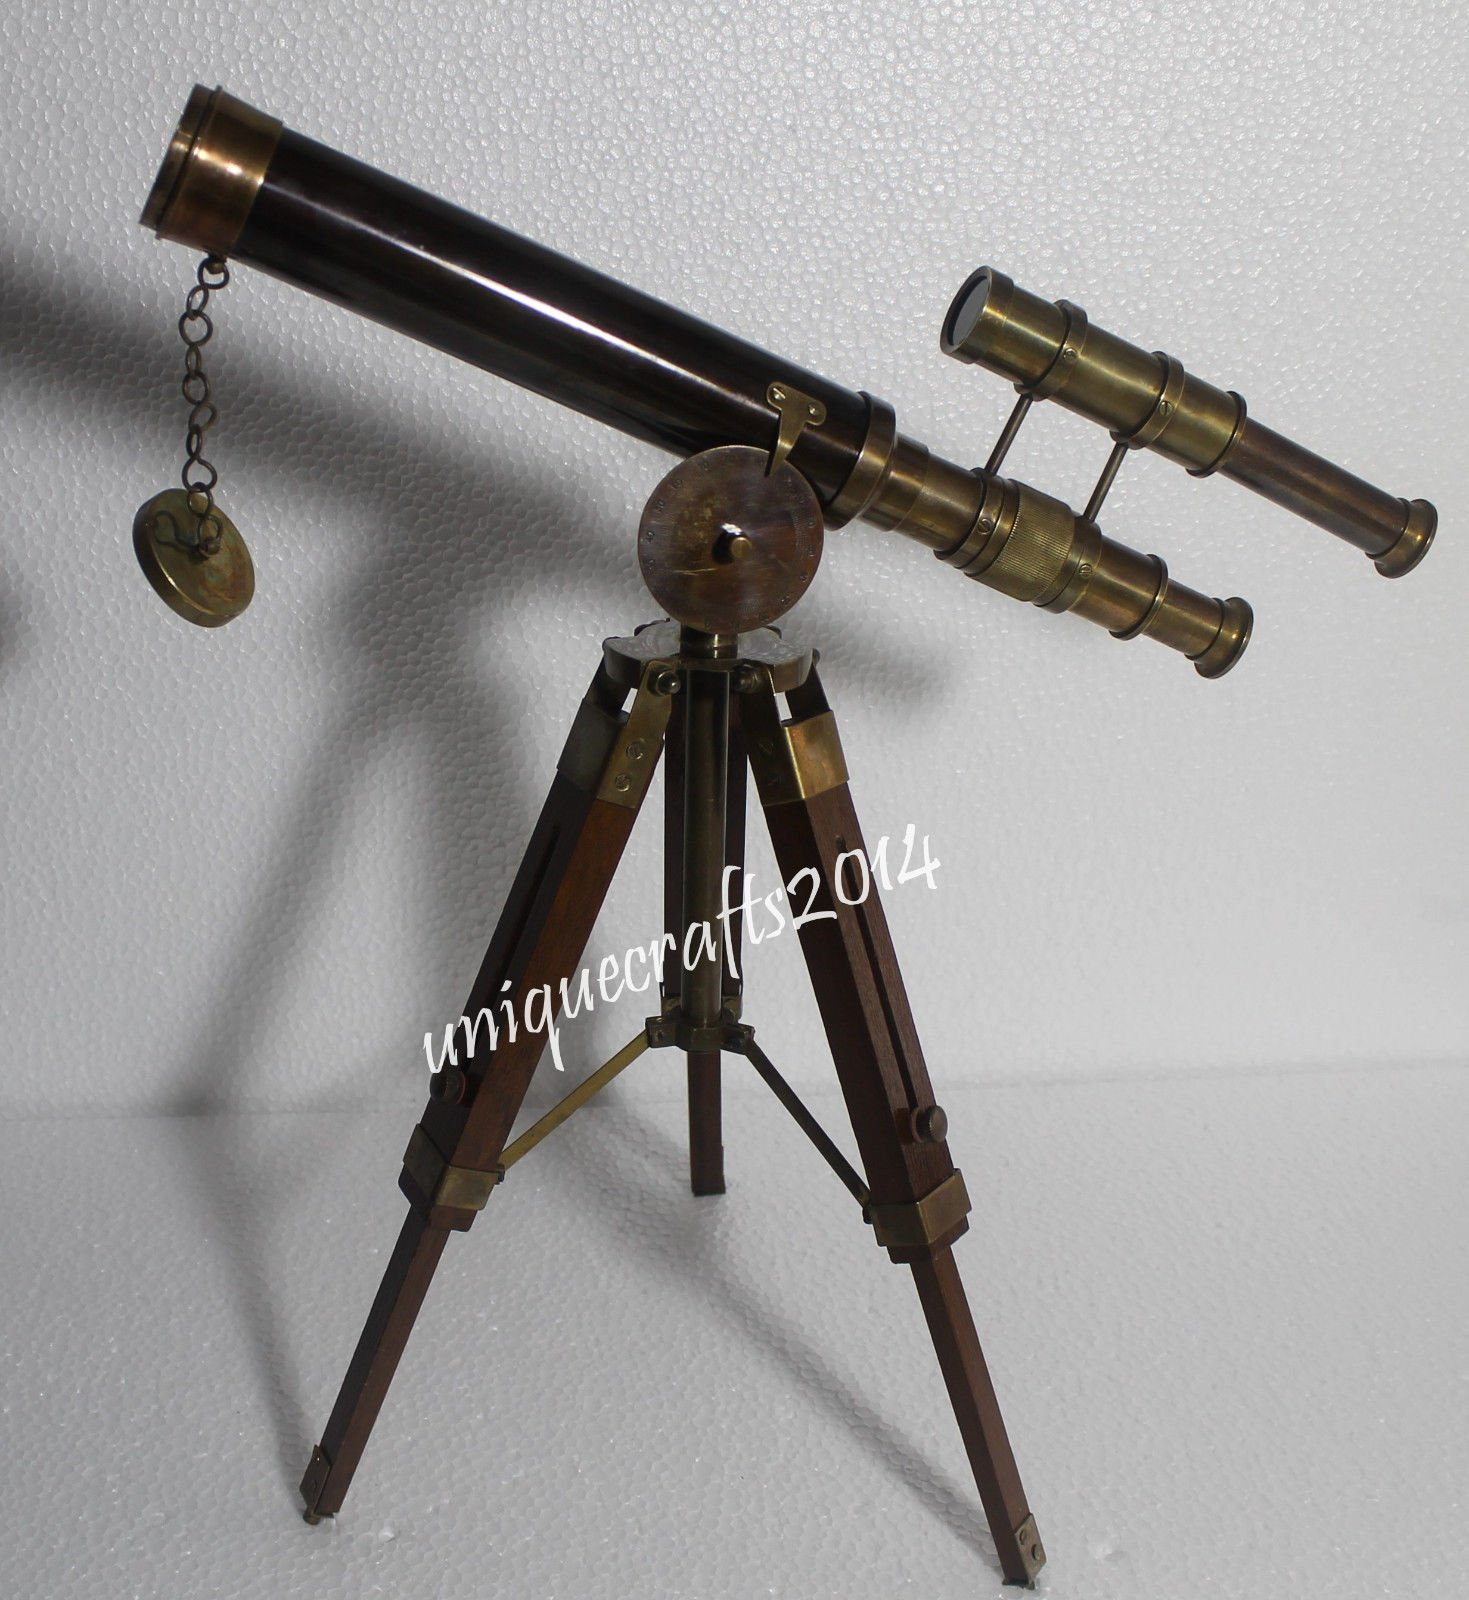 Shaheera Nautical Nautical Antique Brass Telescope 14'' Vintage Marine W/Wooden Tripod Stand Item